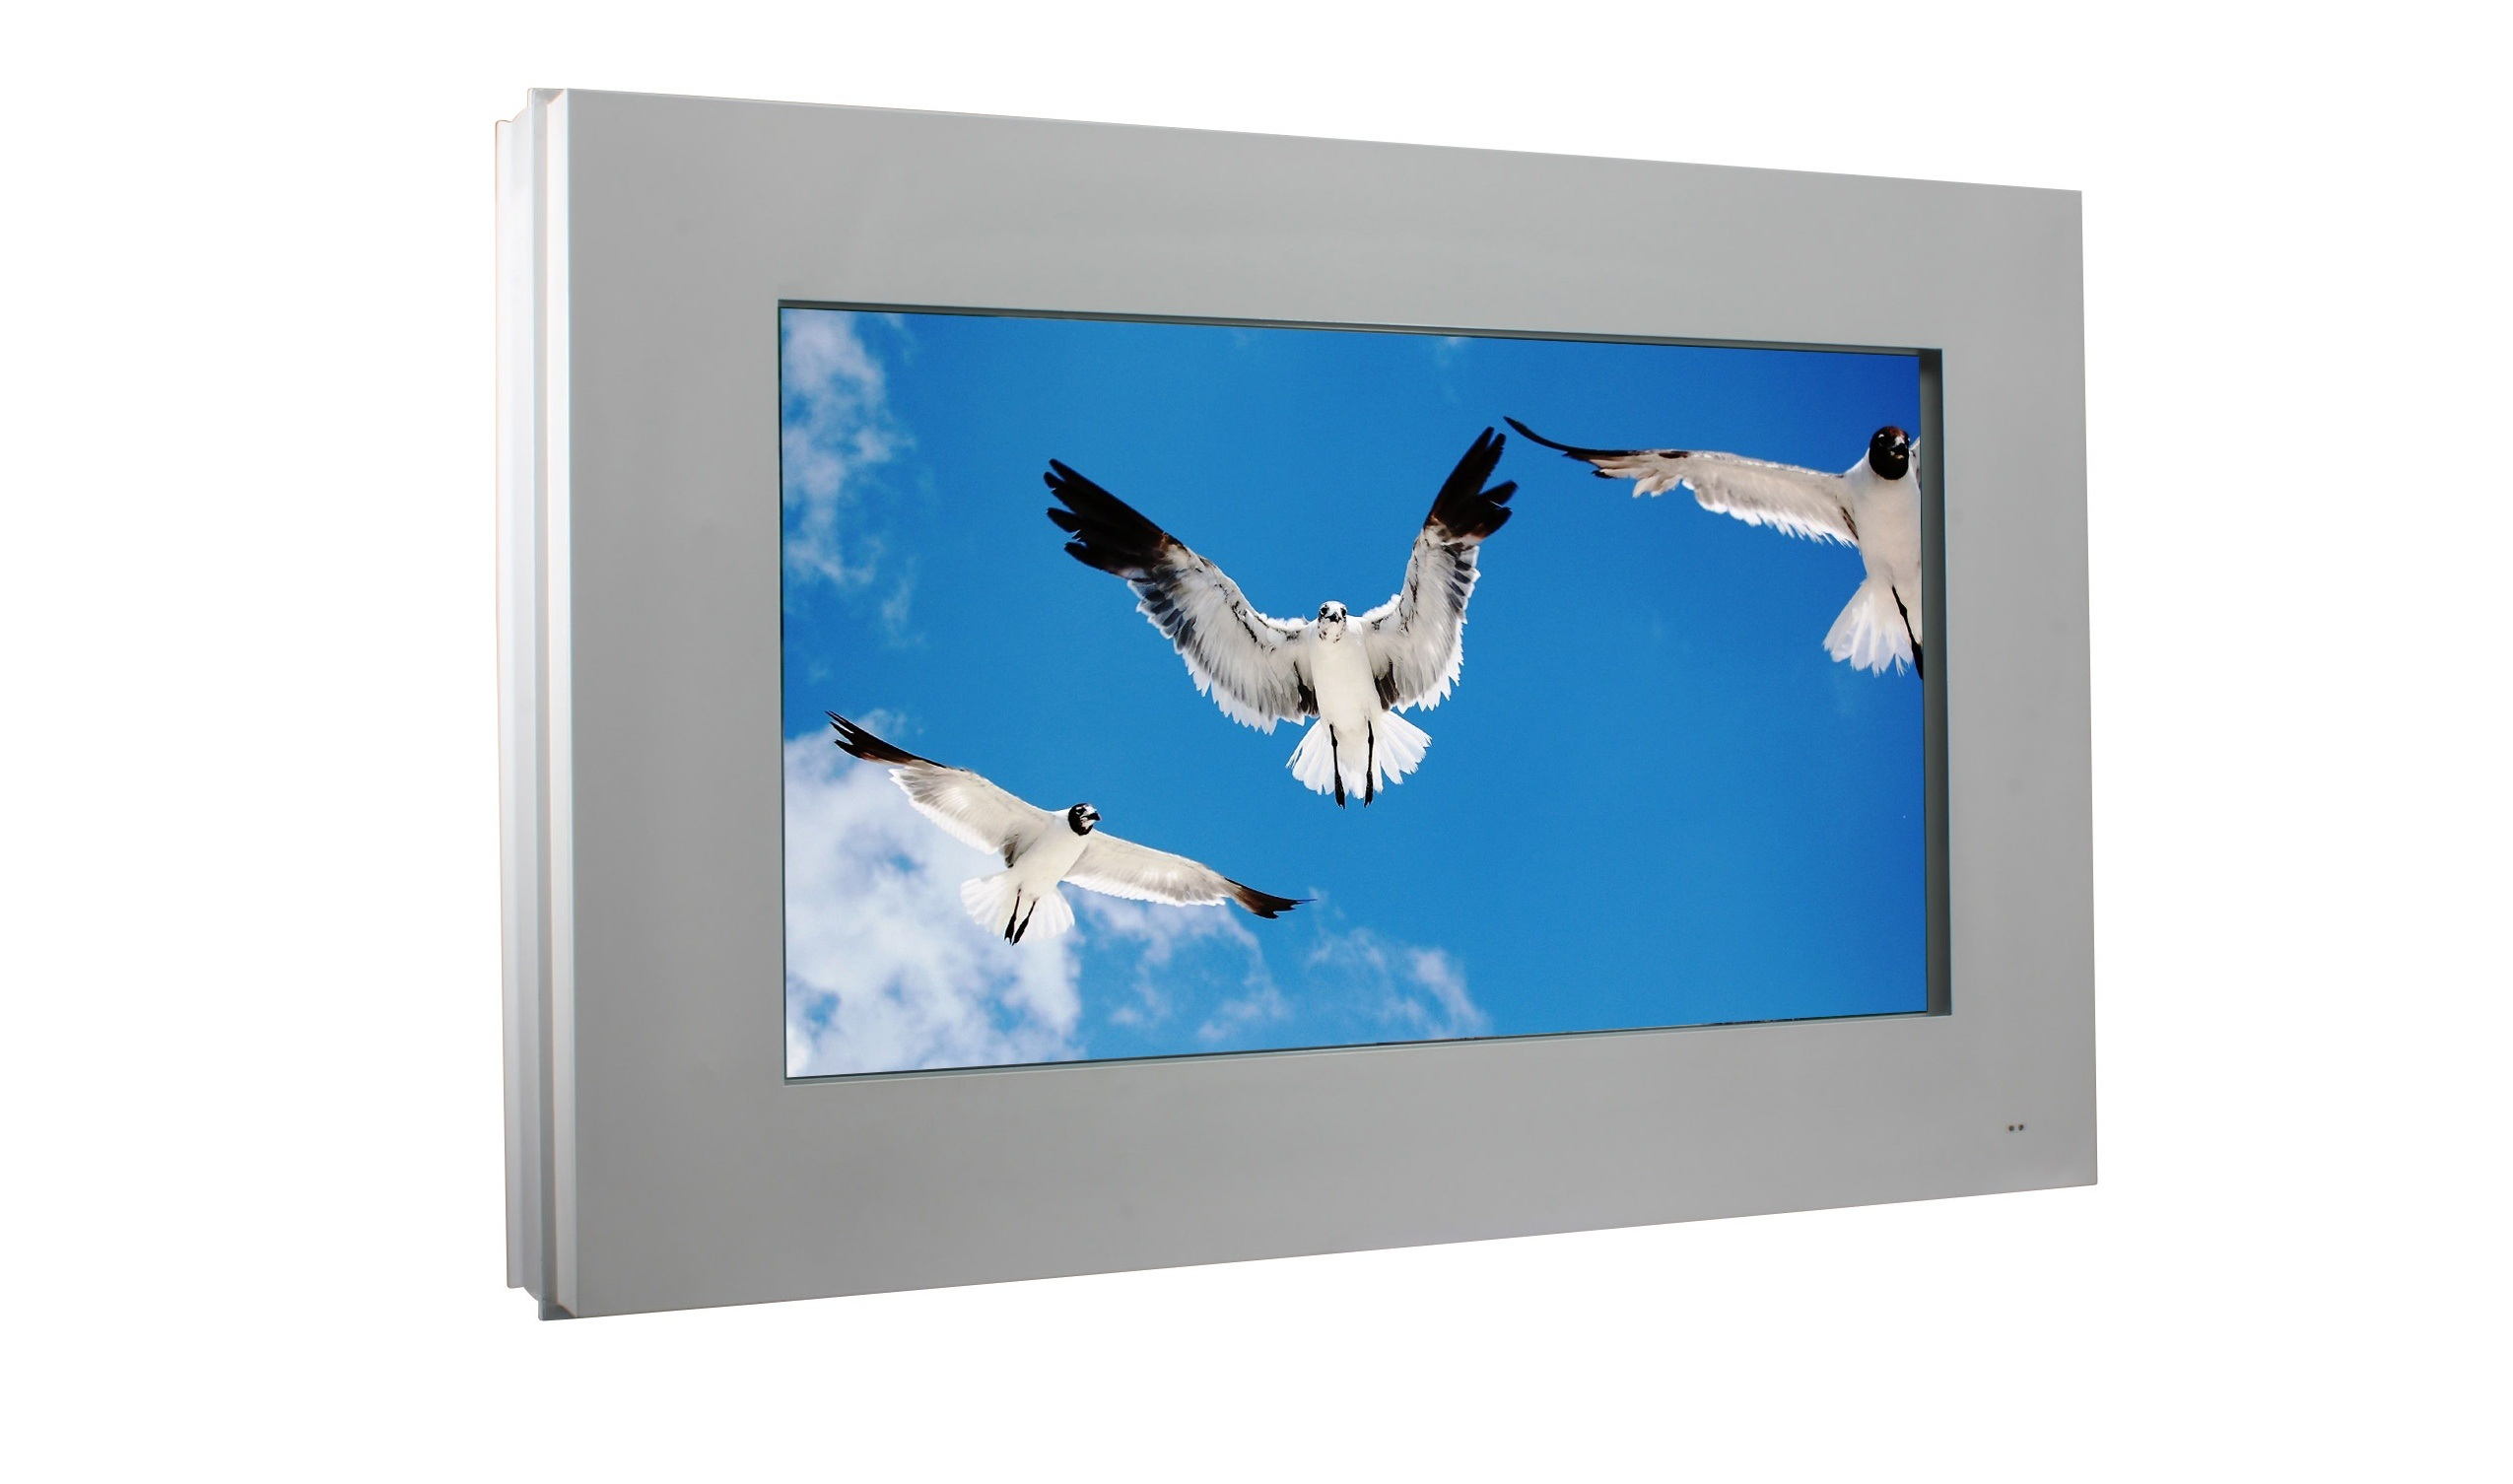 Waterproof Outdoor Tvs for Lesssearch for Weather Resistance Tvs